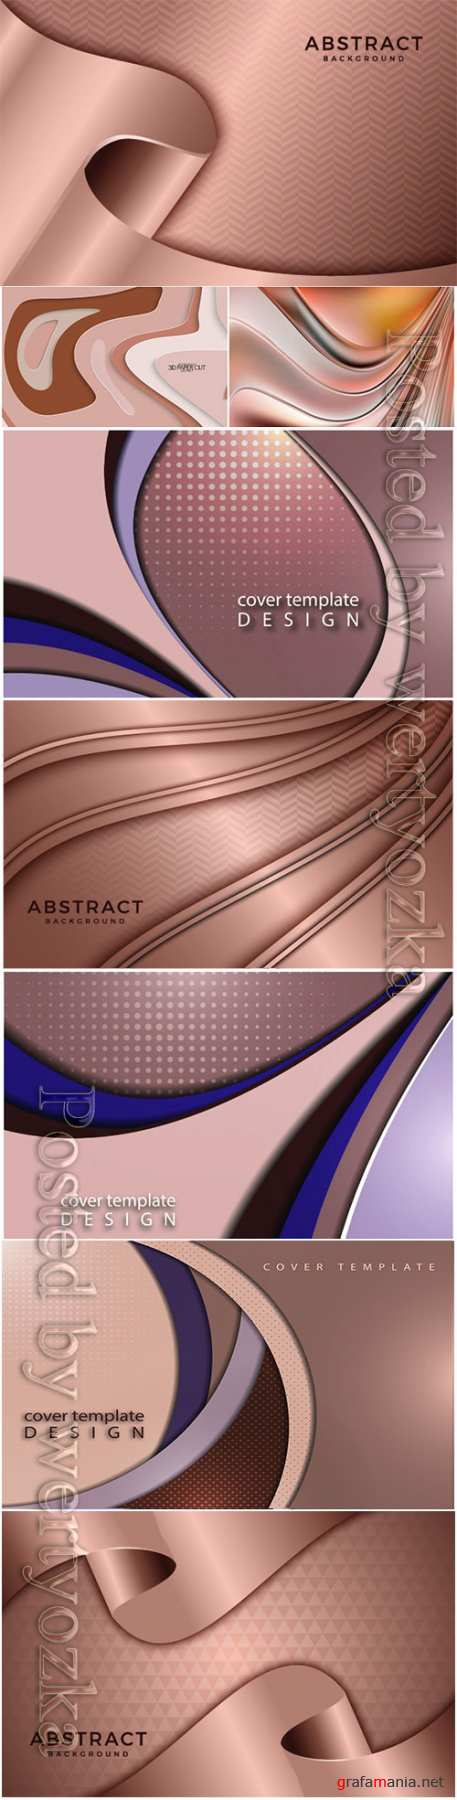 Metallic design for background and vector abstract poster